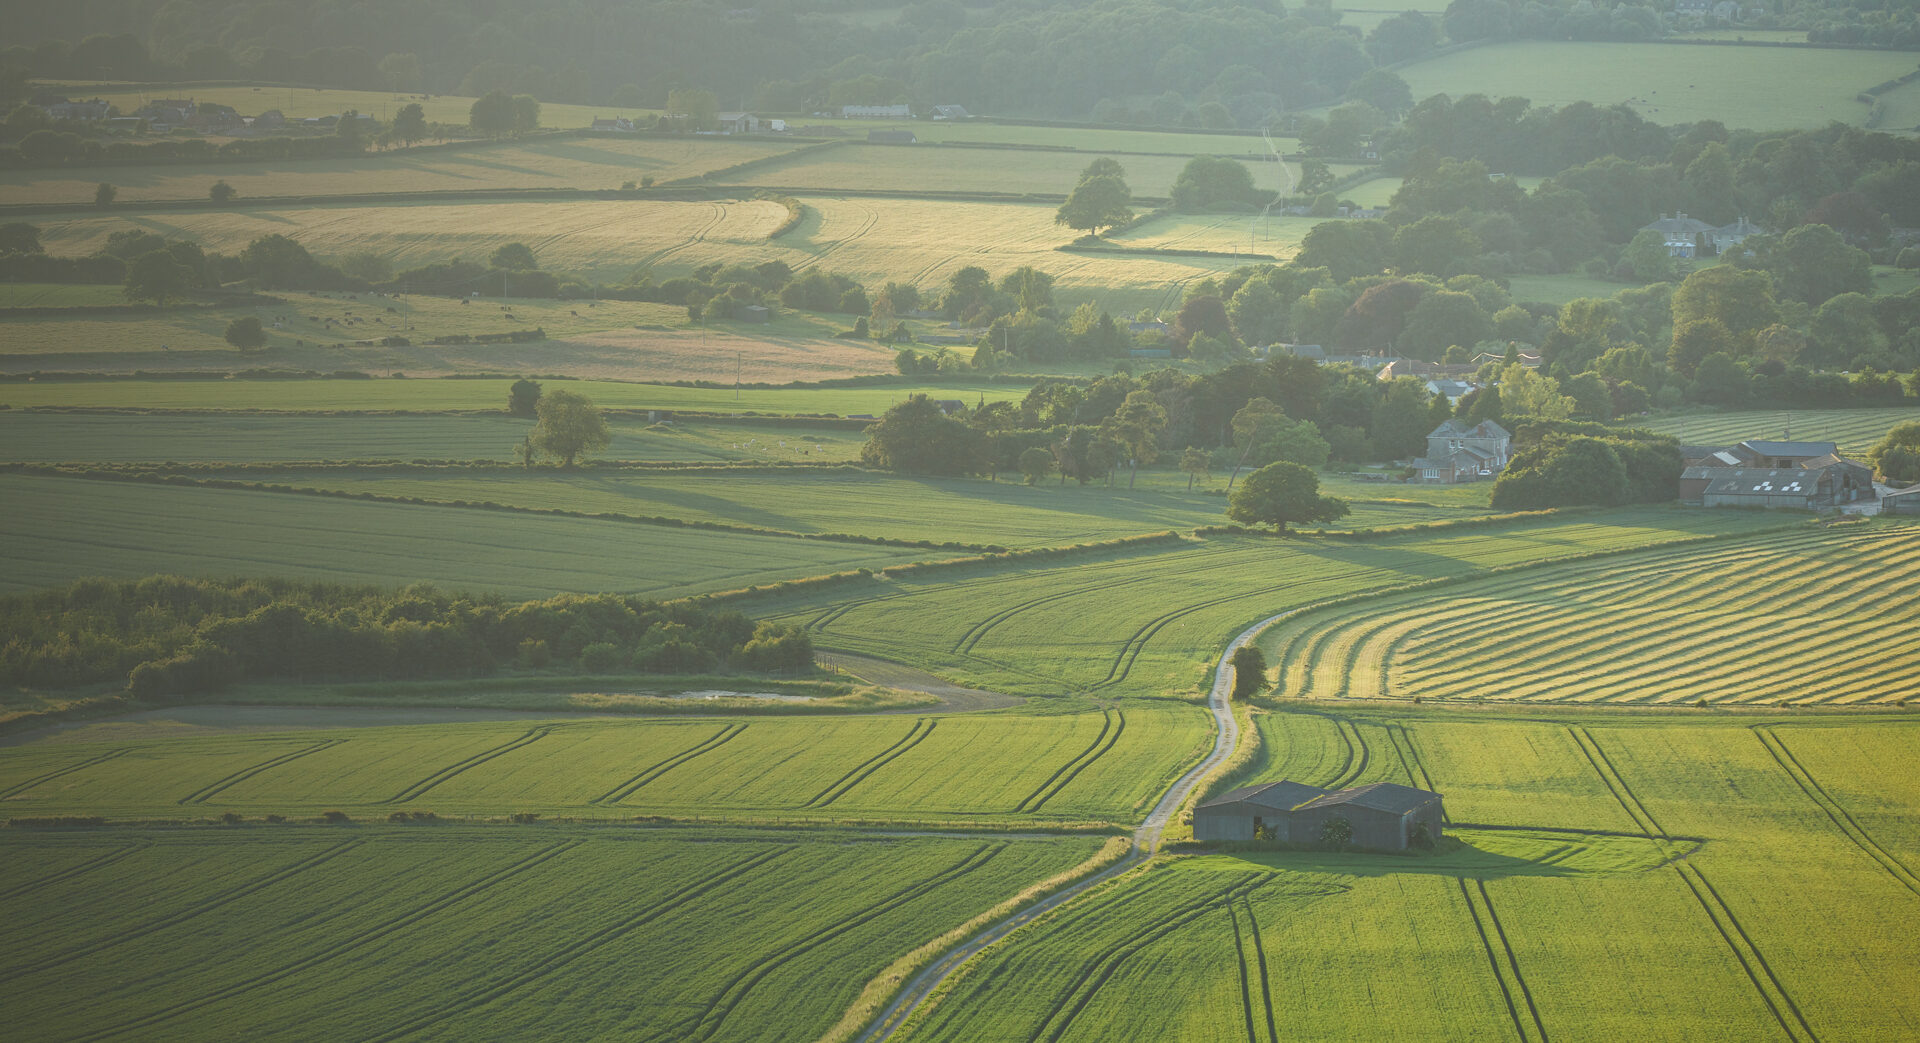 Rural Property for Sale and to Let